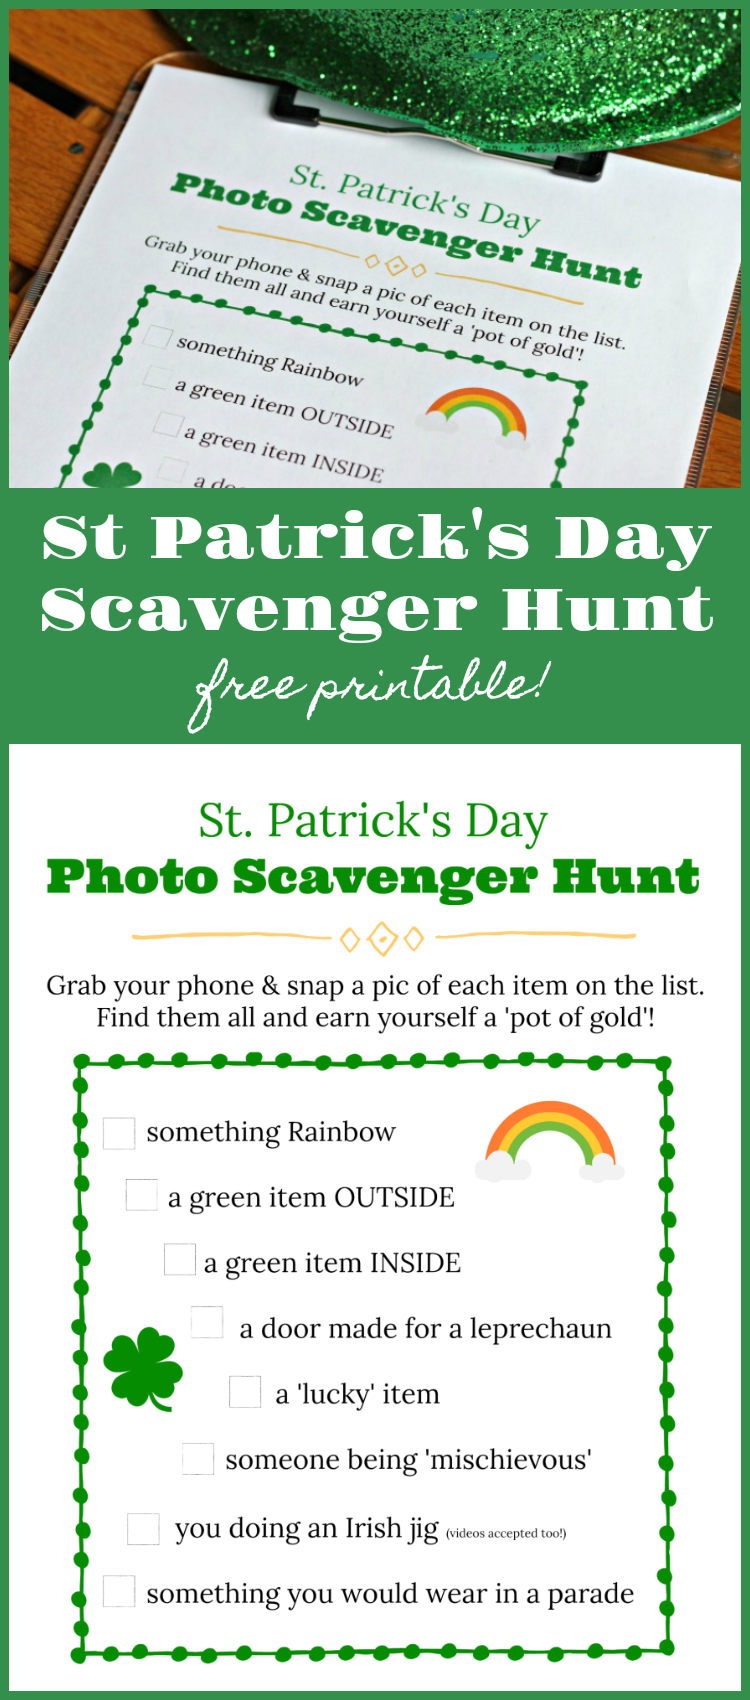 St Patrick's Day scavenger hunt list